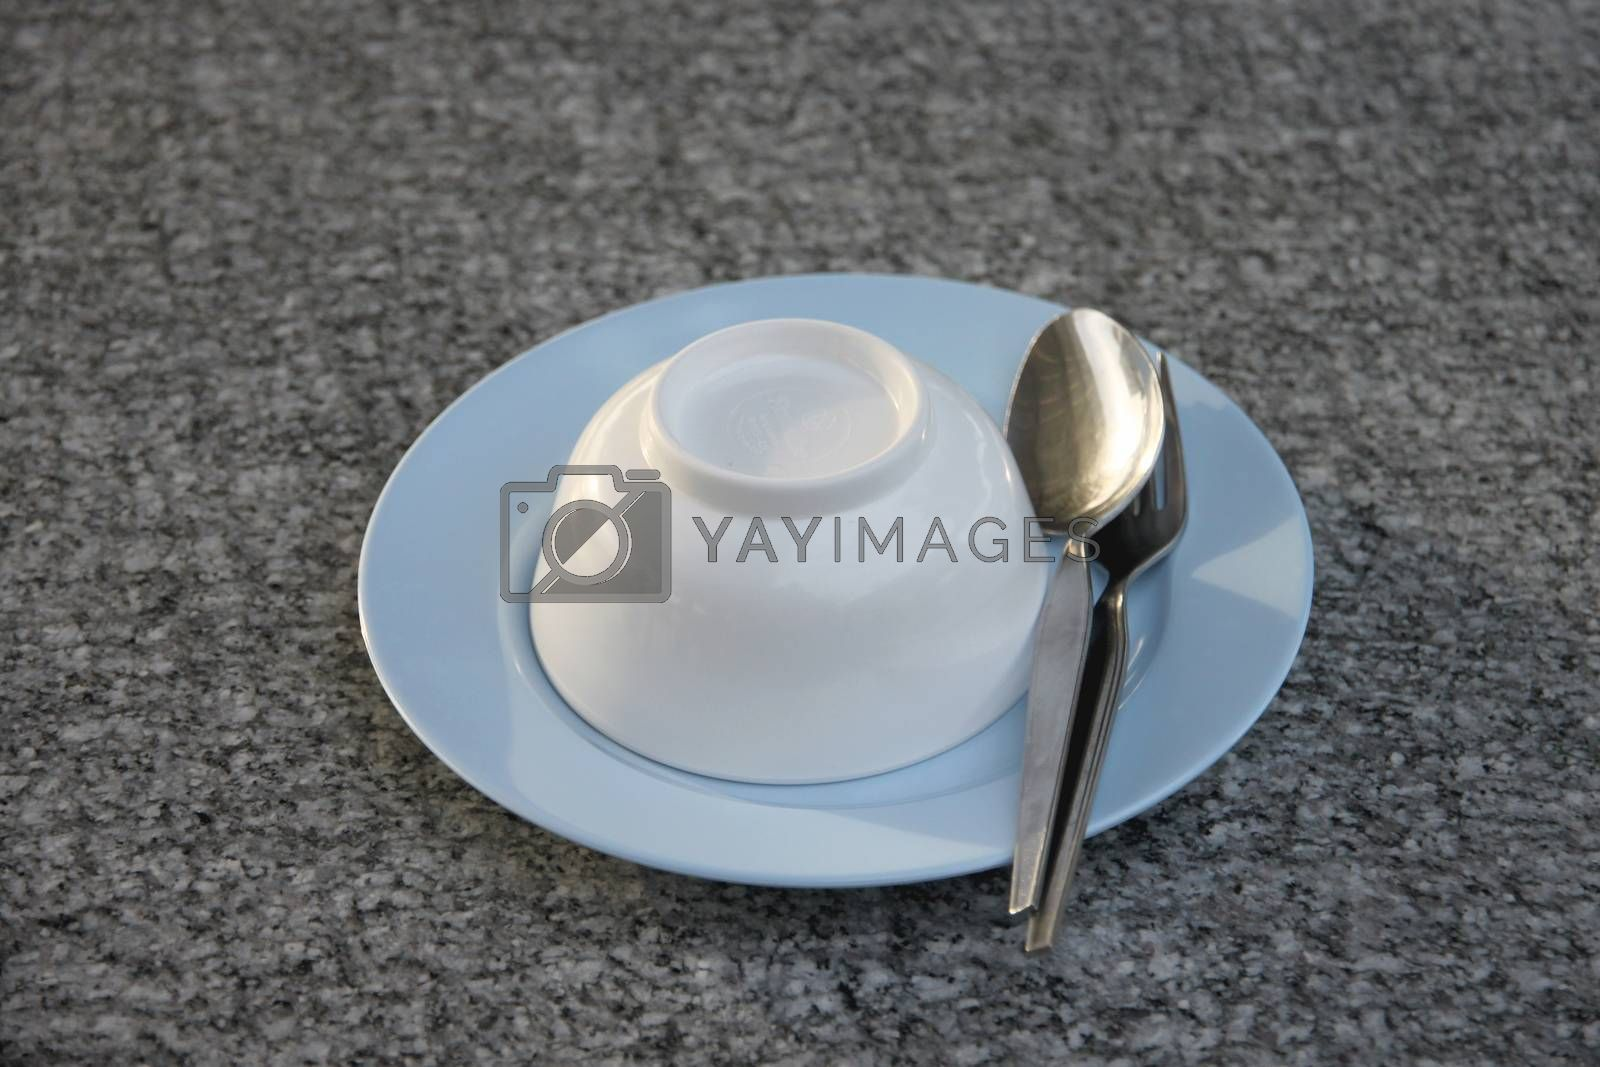 Plate and spoon on table. by PiyaPhoto